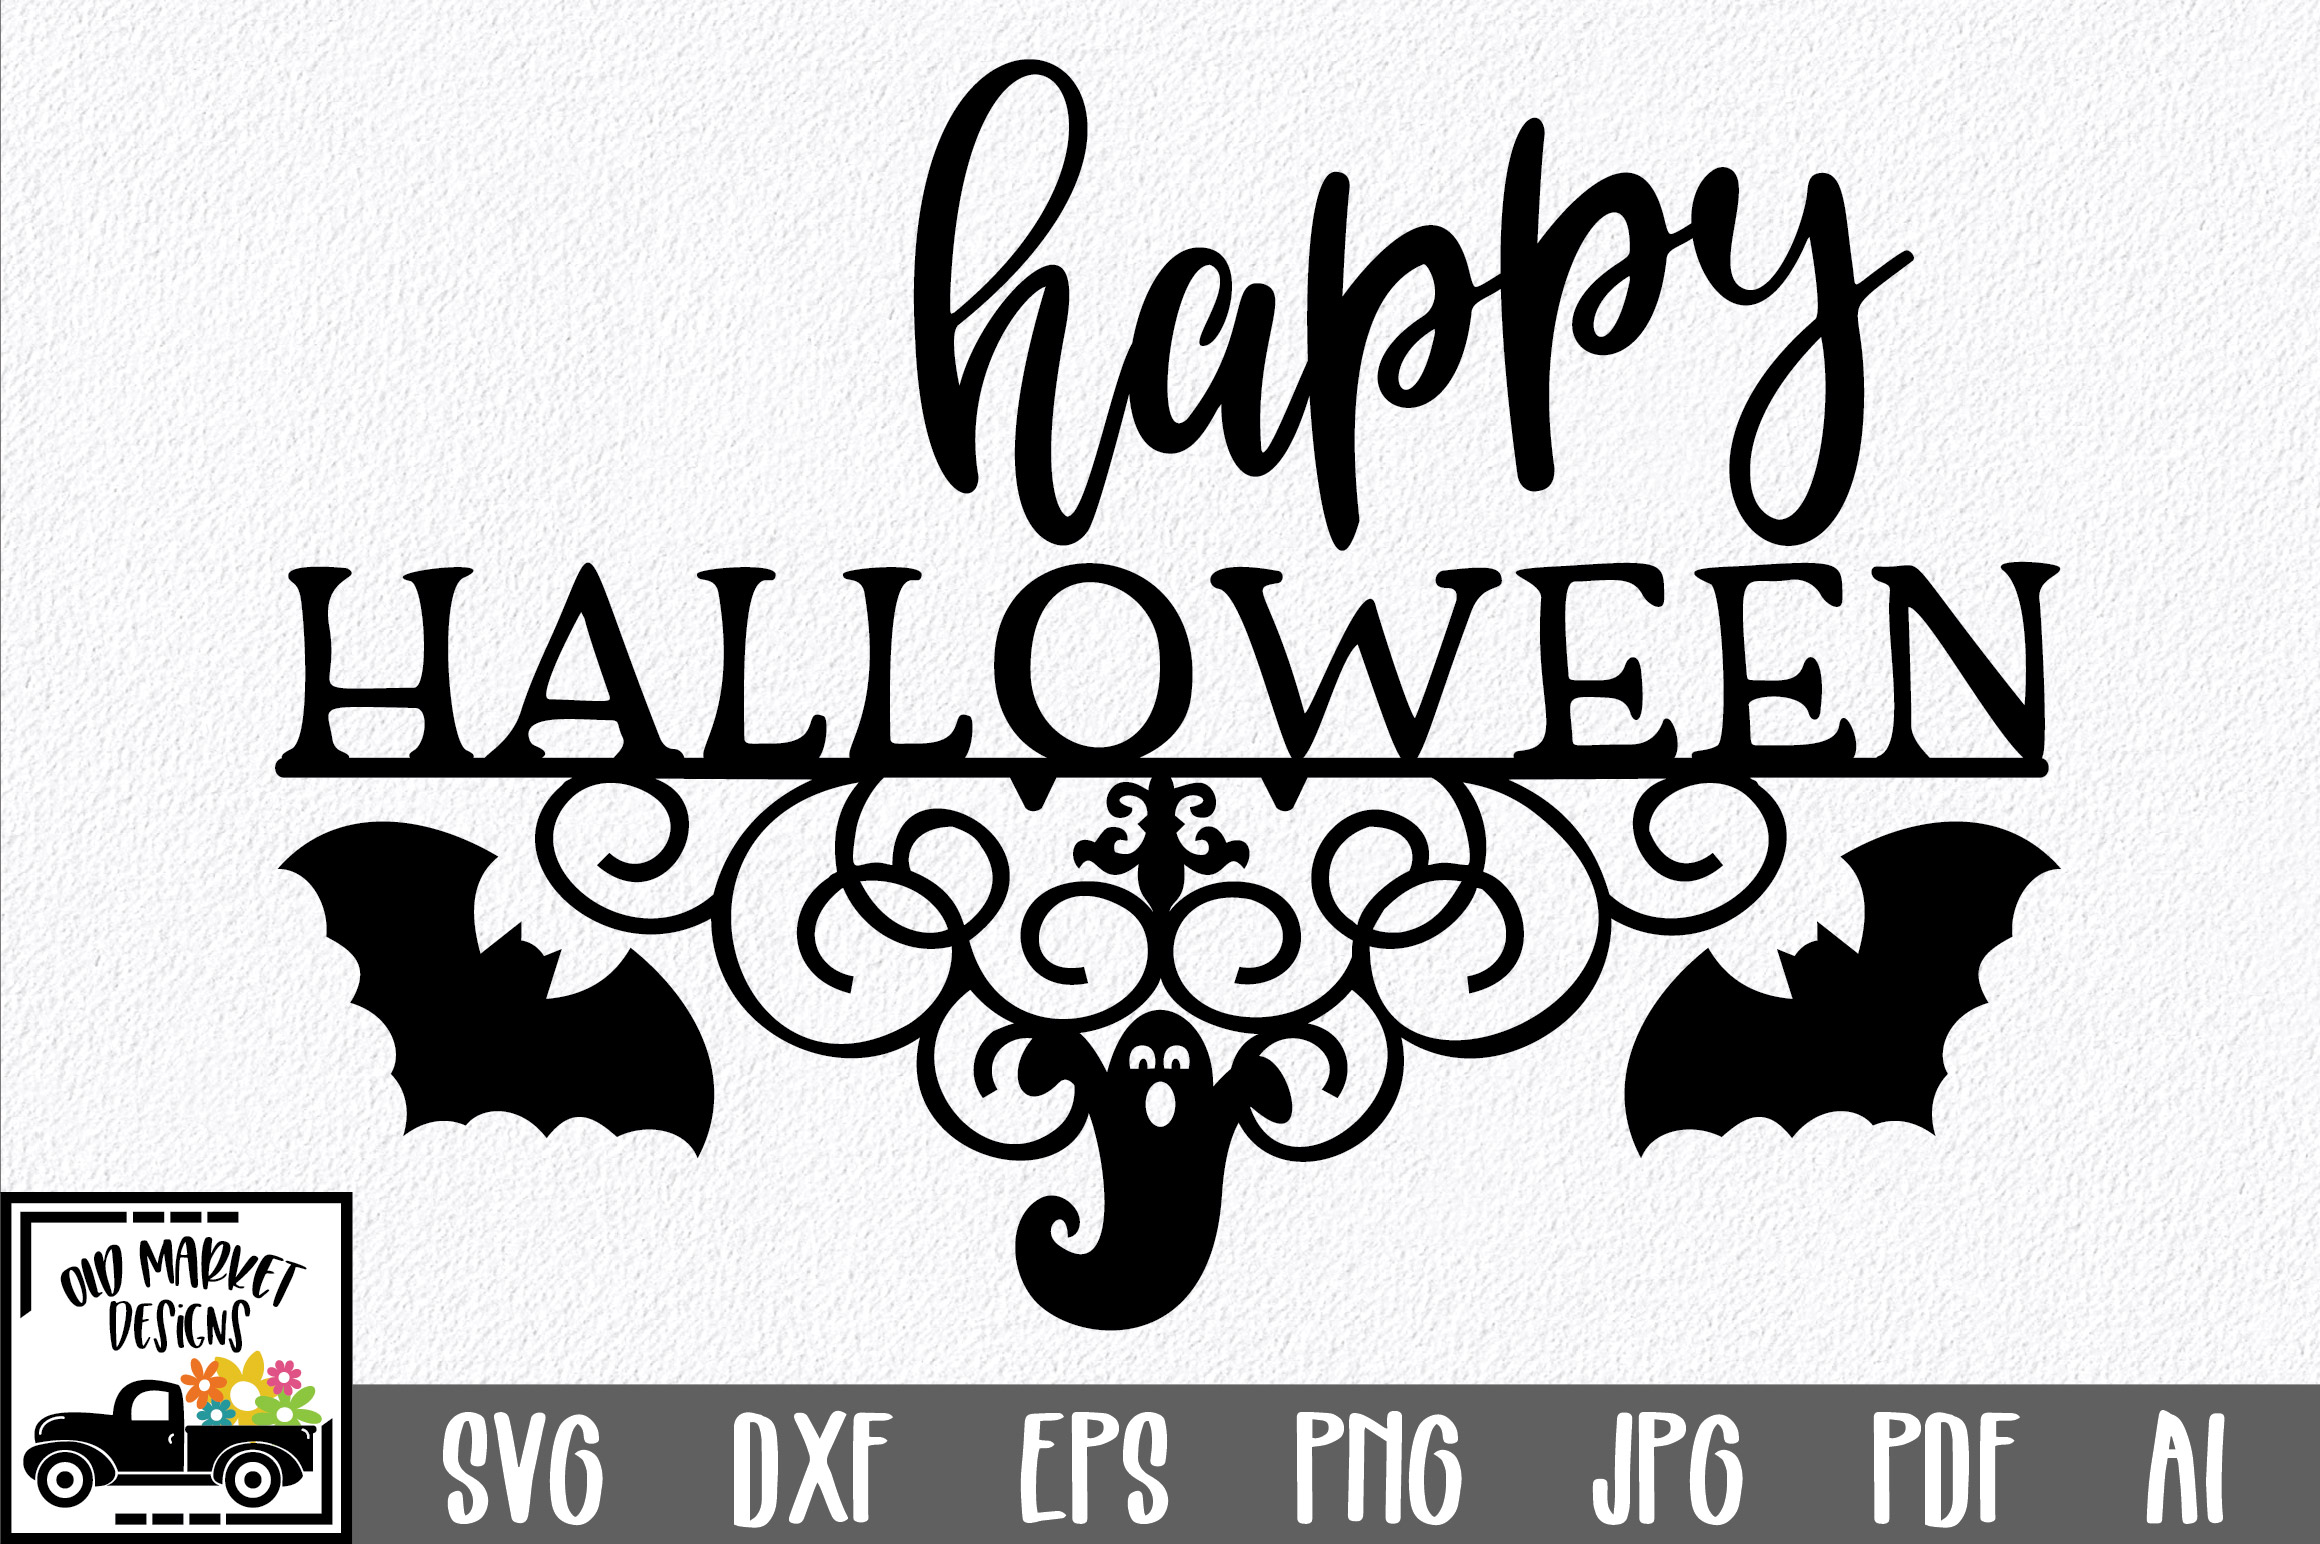 Download Free Happy Halloween Graphic By Oldmarketdesigns Creative Fabrica for Cricut Explore, Silhouette and other cutting machines.